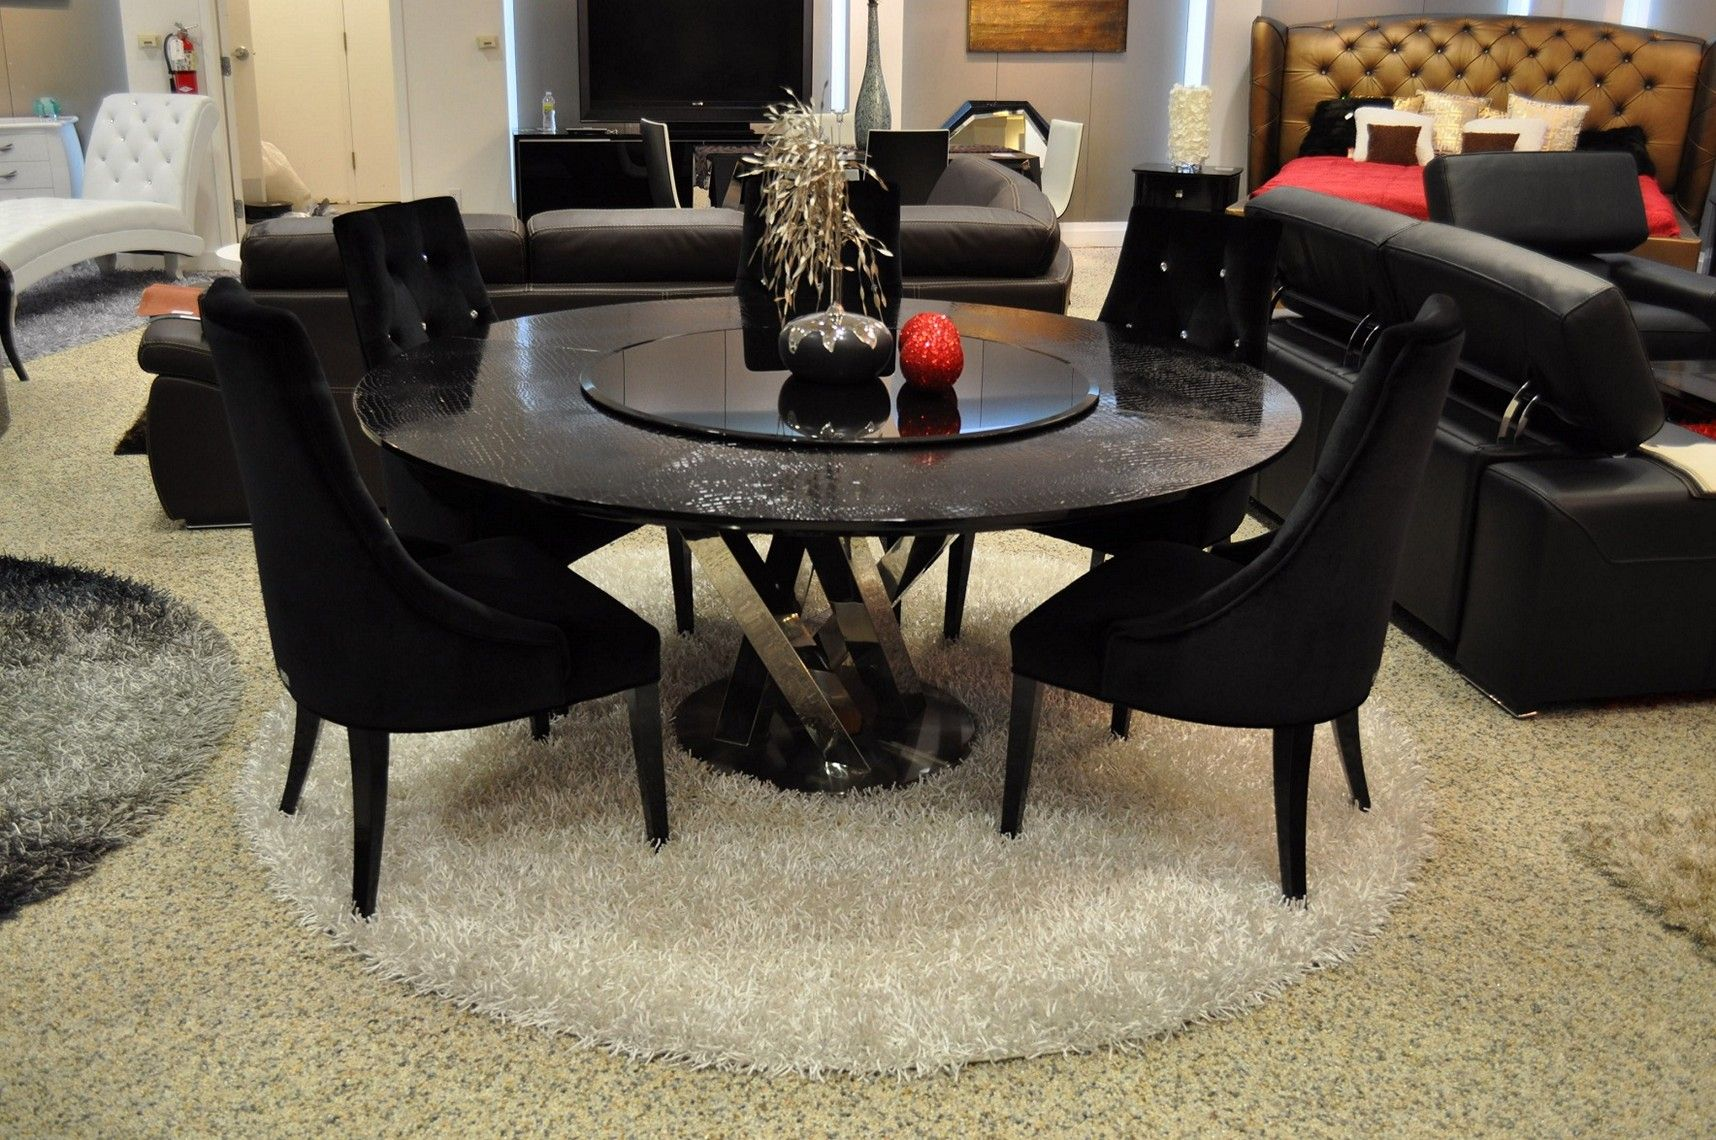 72 Inch Round Dining Table Black Large Round Dining Table Round